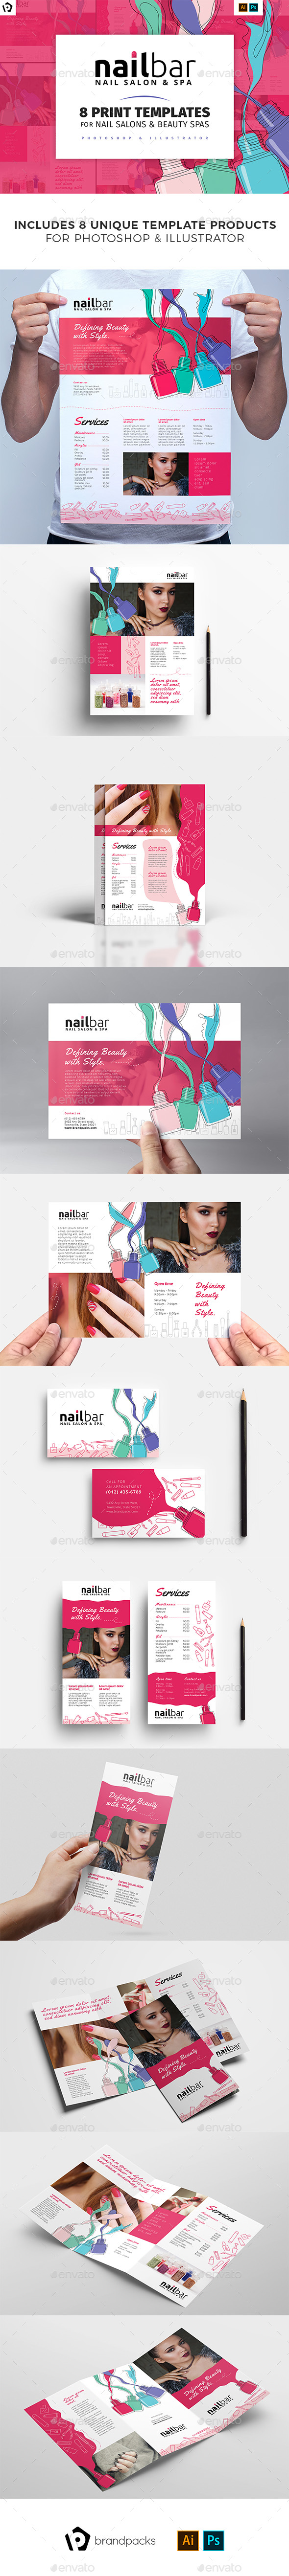 Nail Bar Templates Bundle - Commerce Flyers